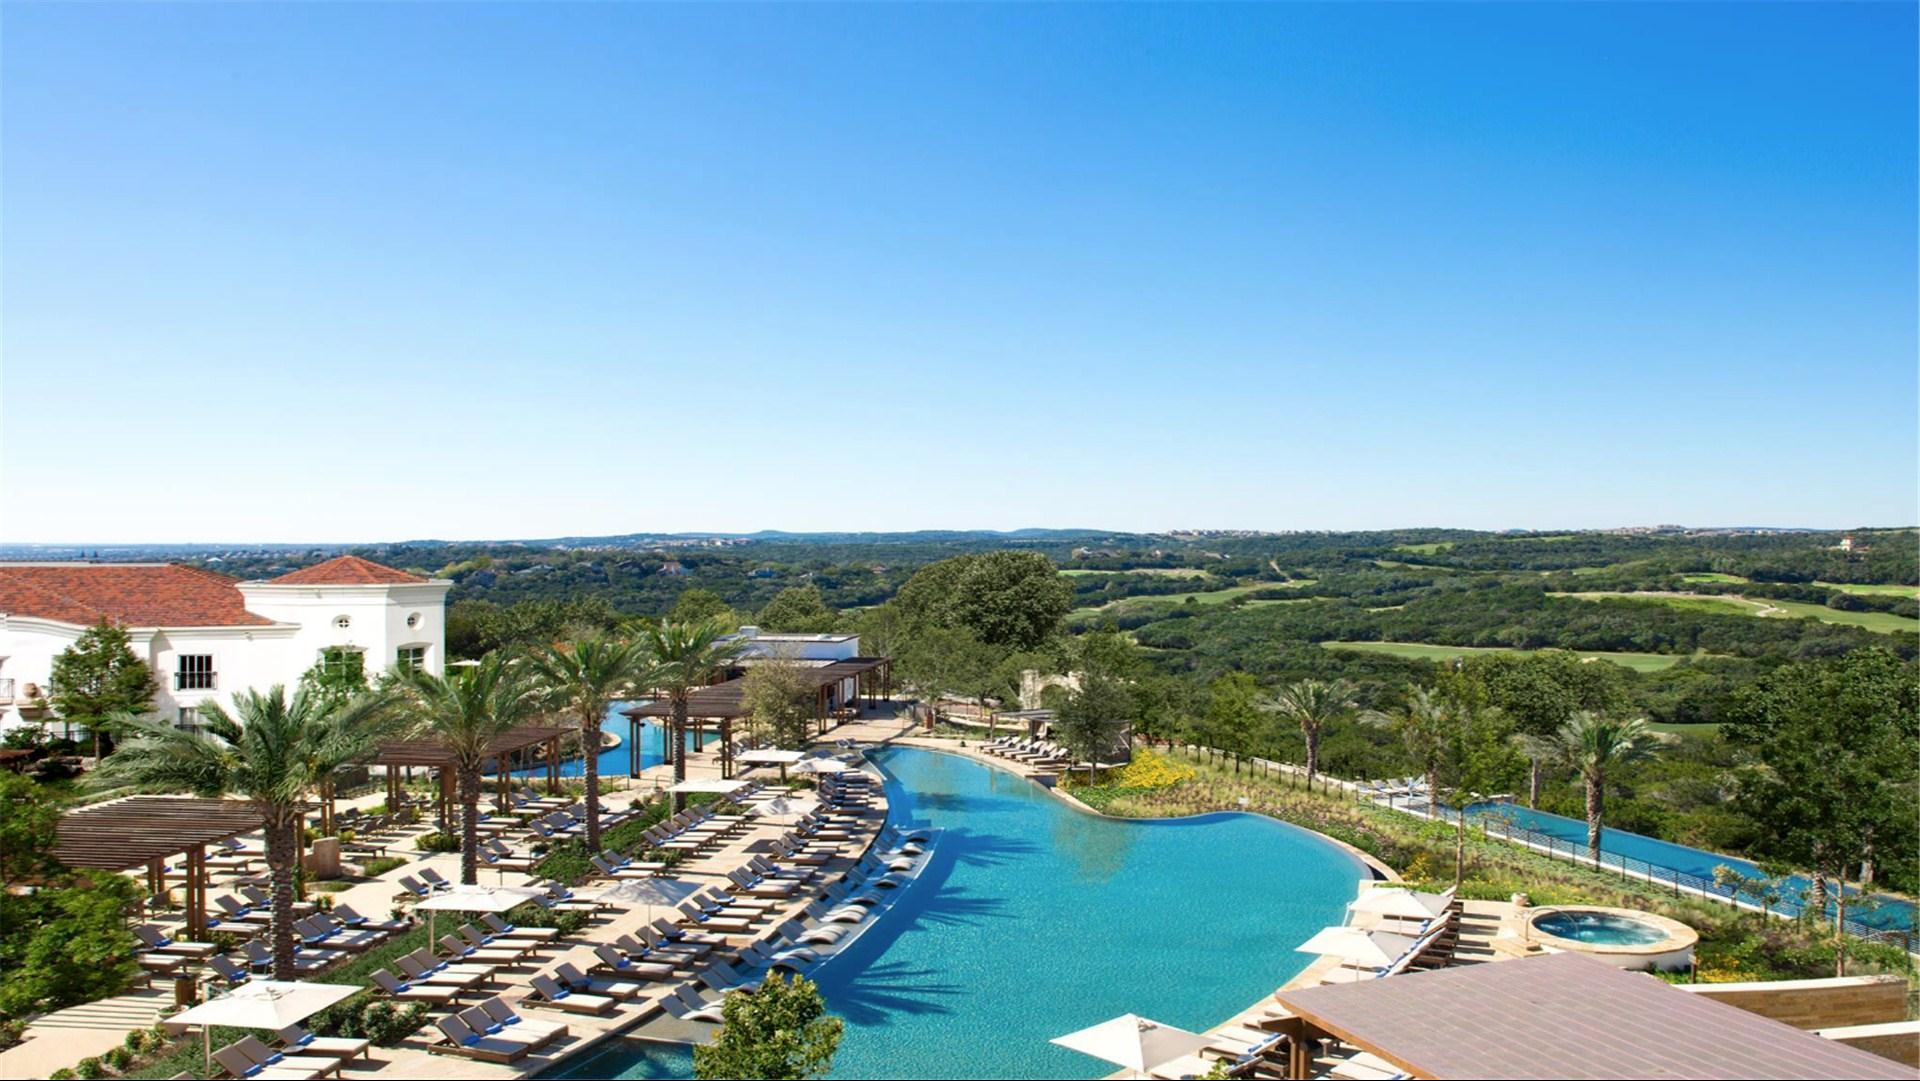 La Cantera Resort & Spa is a luxury resort in the San Antonio Hill Country. Located in Texas Hill Country, this transformed hotel features packages, a full-service spa, two championship golf courses, meeting and wedding venues and more.